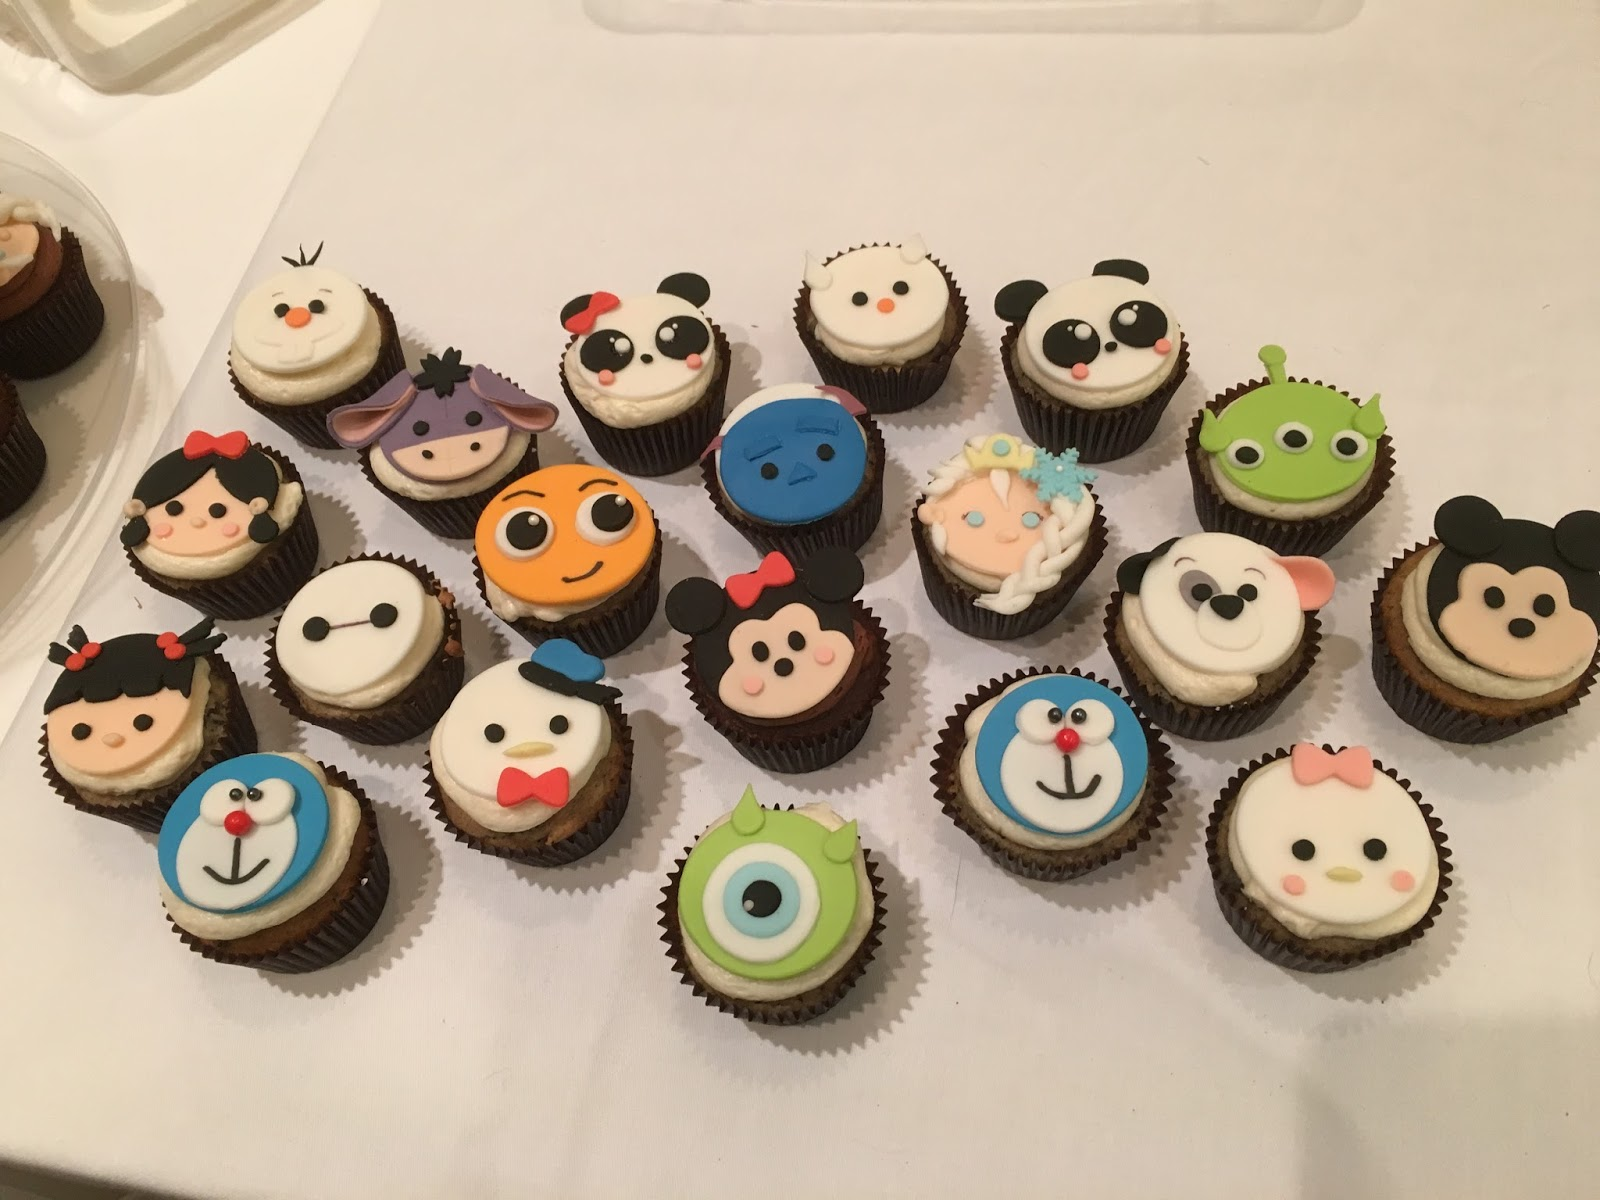 Our Decorated Cakes and Cupcakes More Tsum Themed Cupcakes and